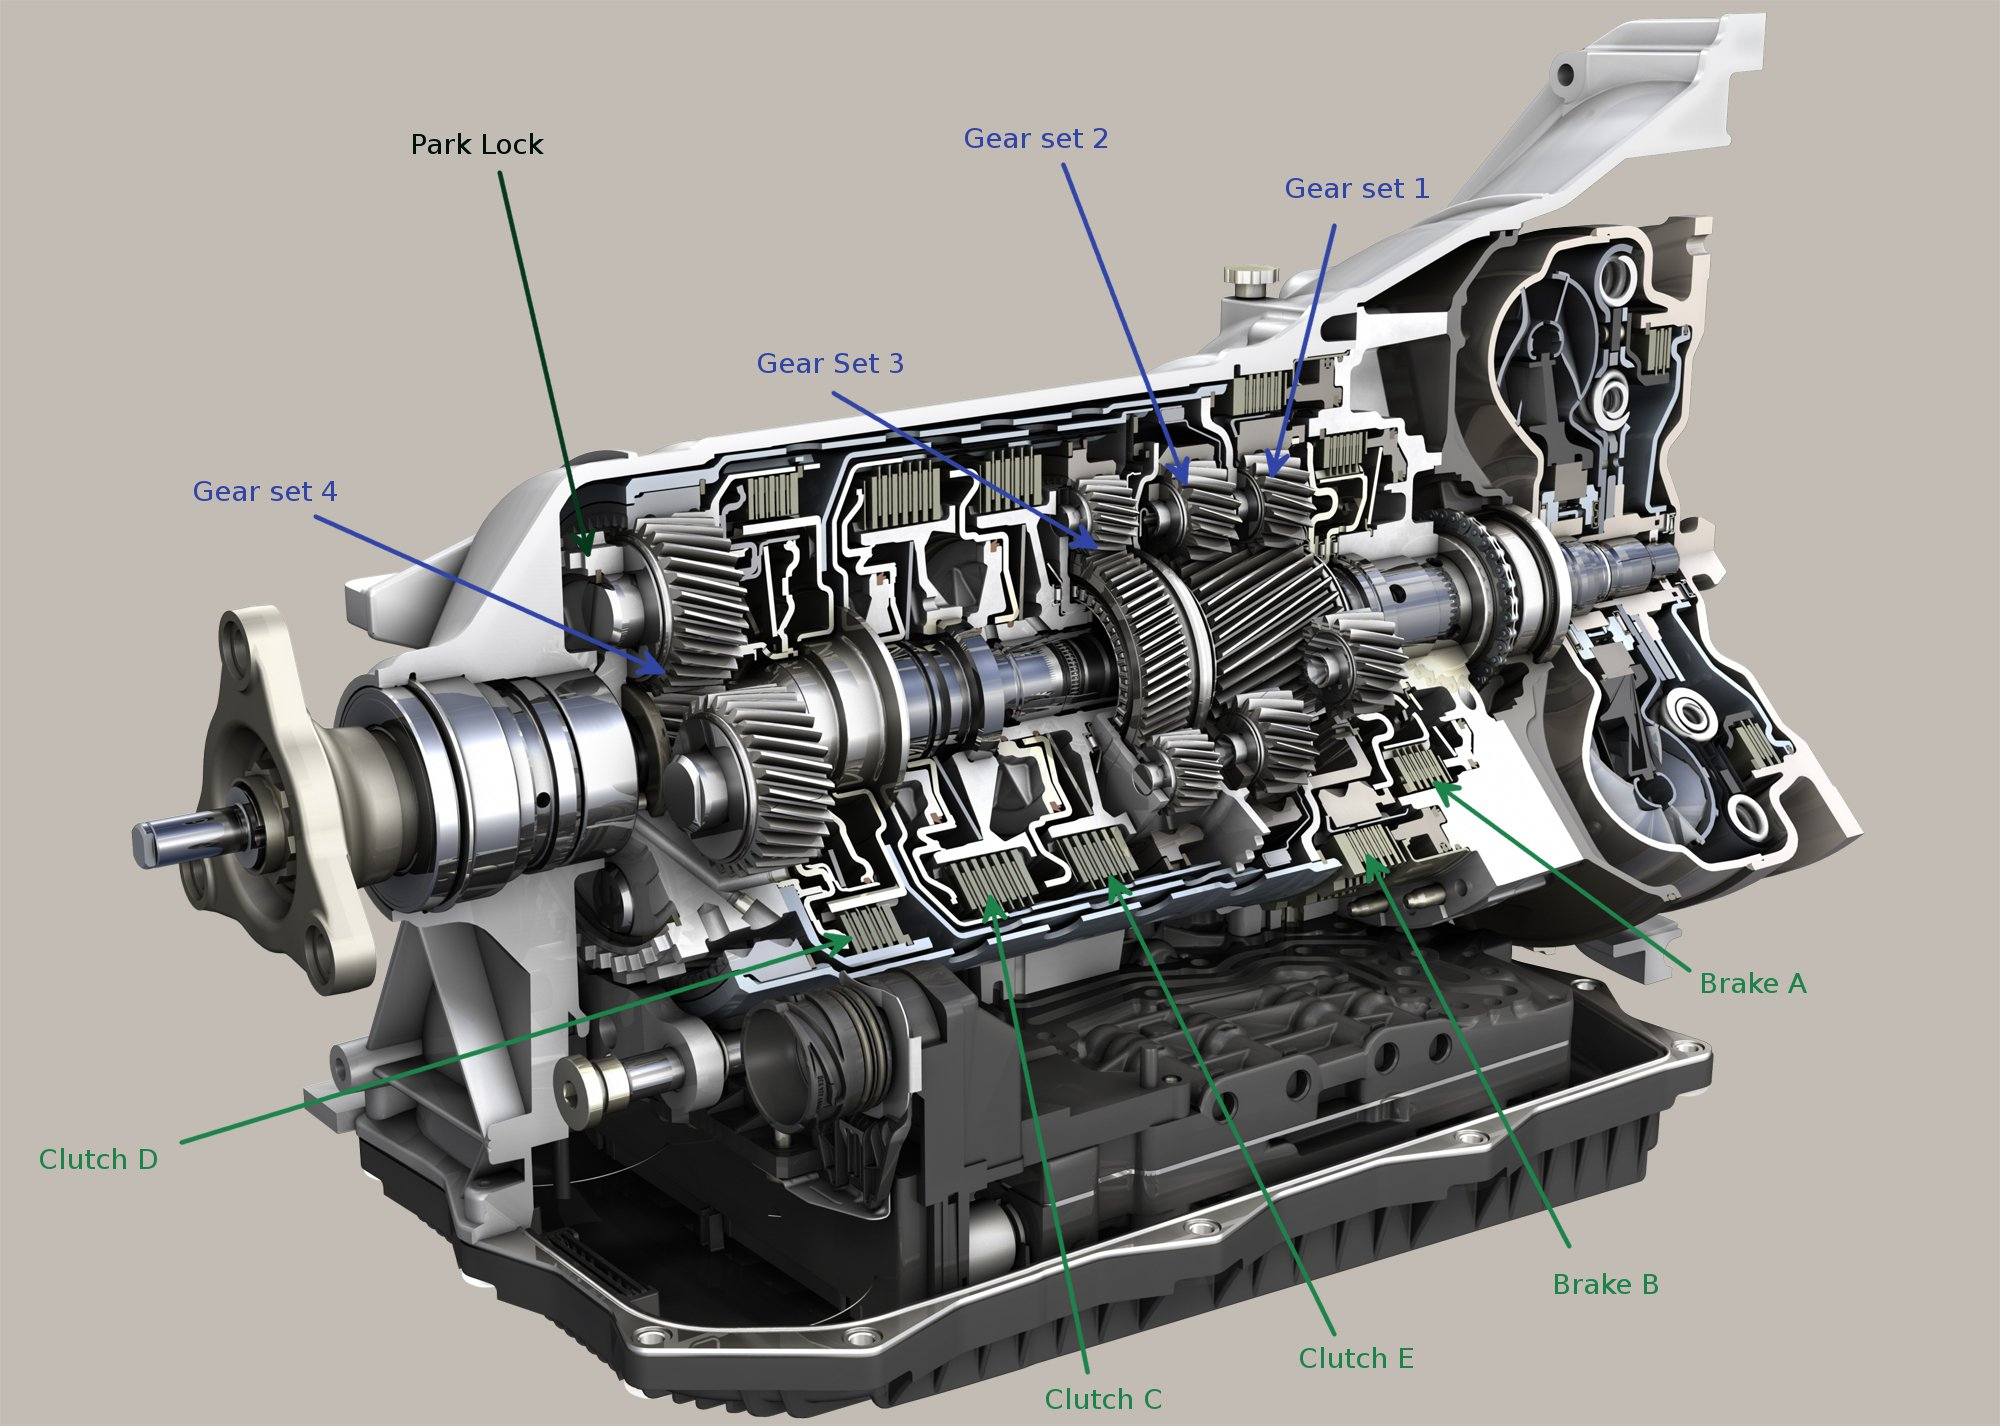 Engineering Explained explains why the ZF8HP 8 Speed transmission is